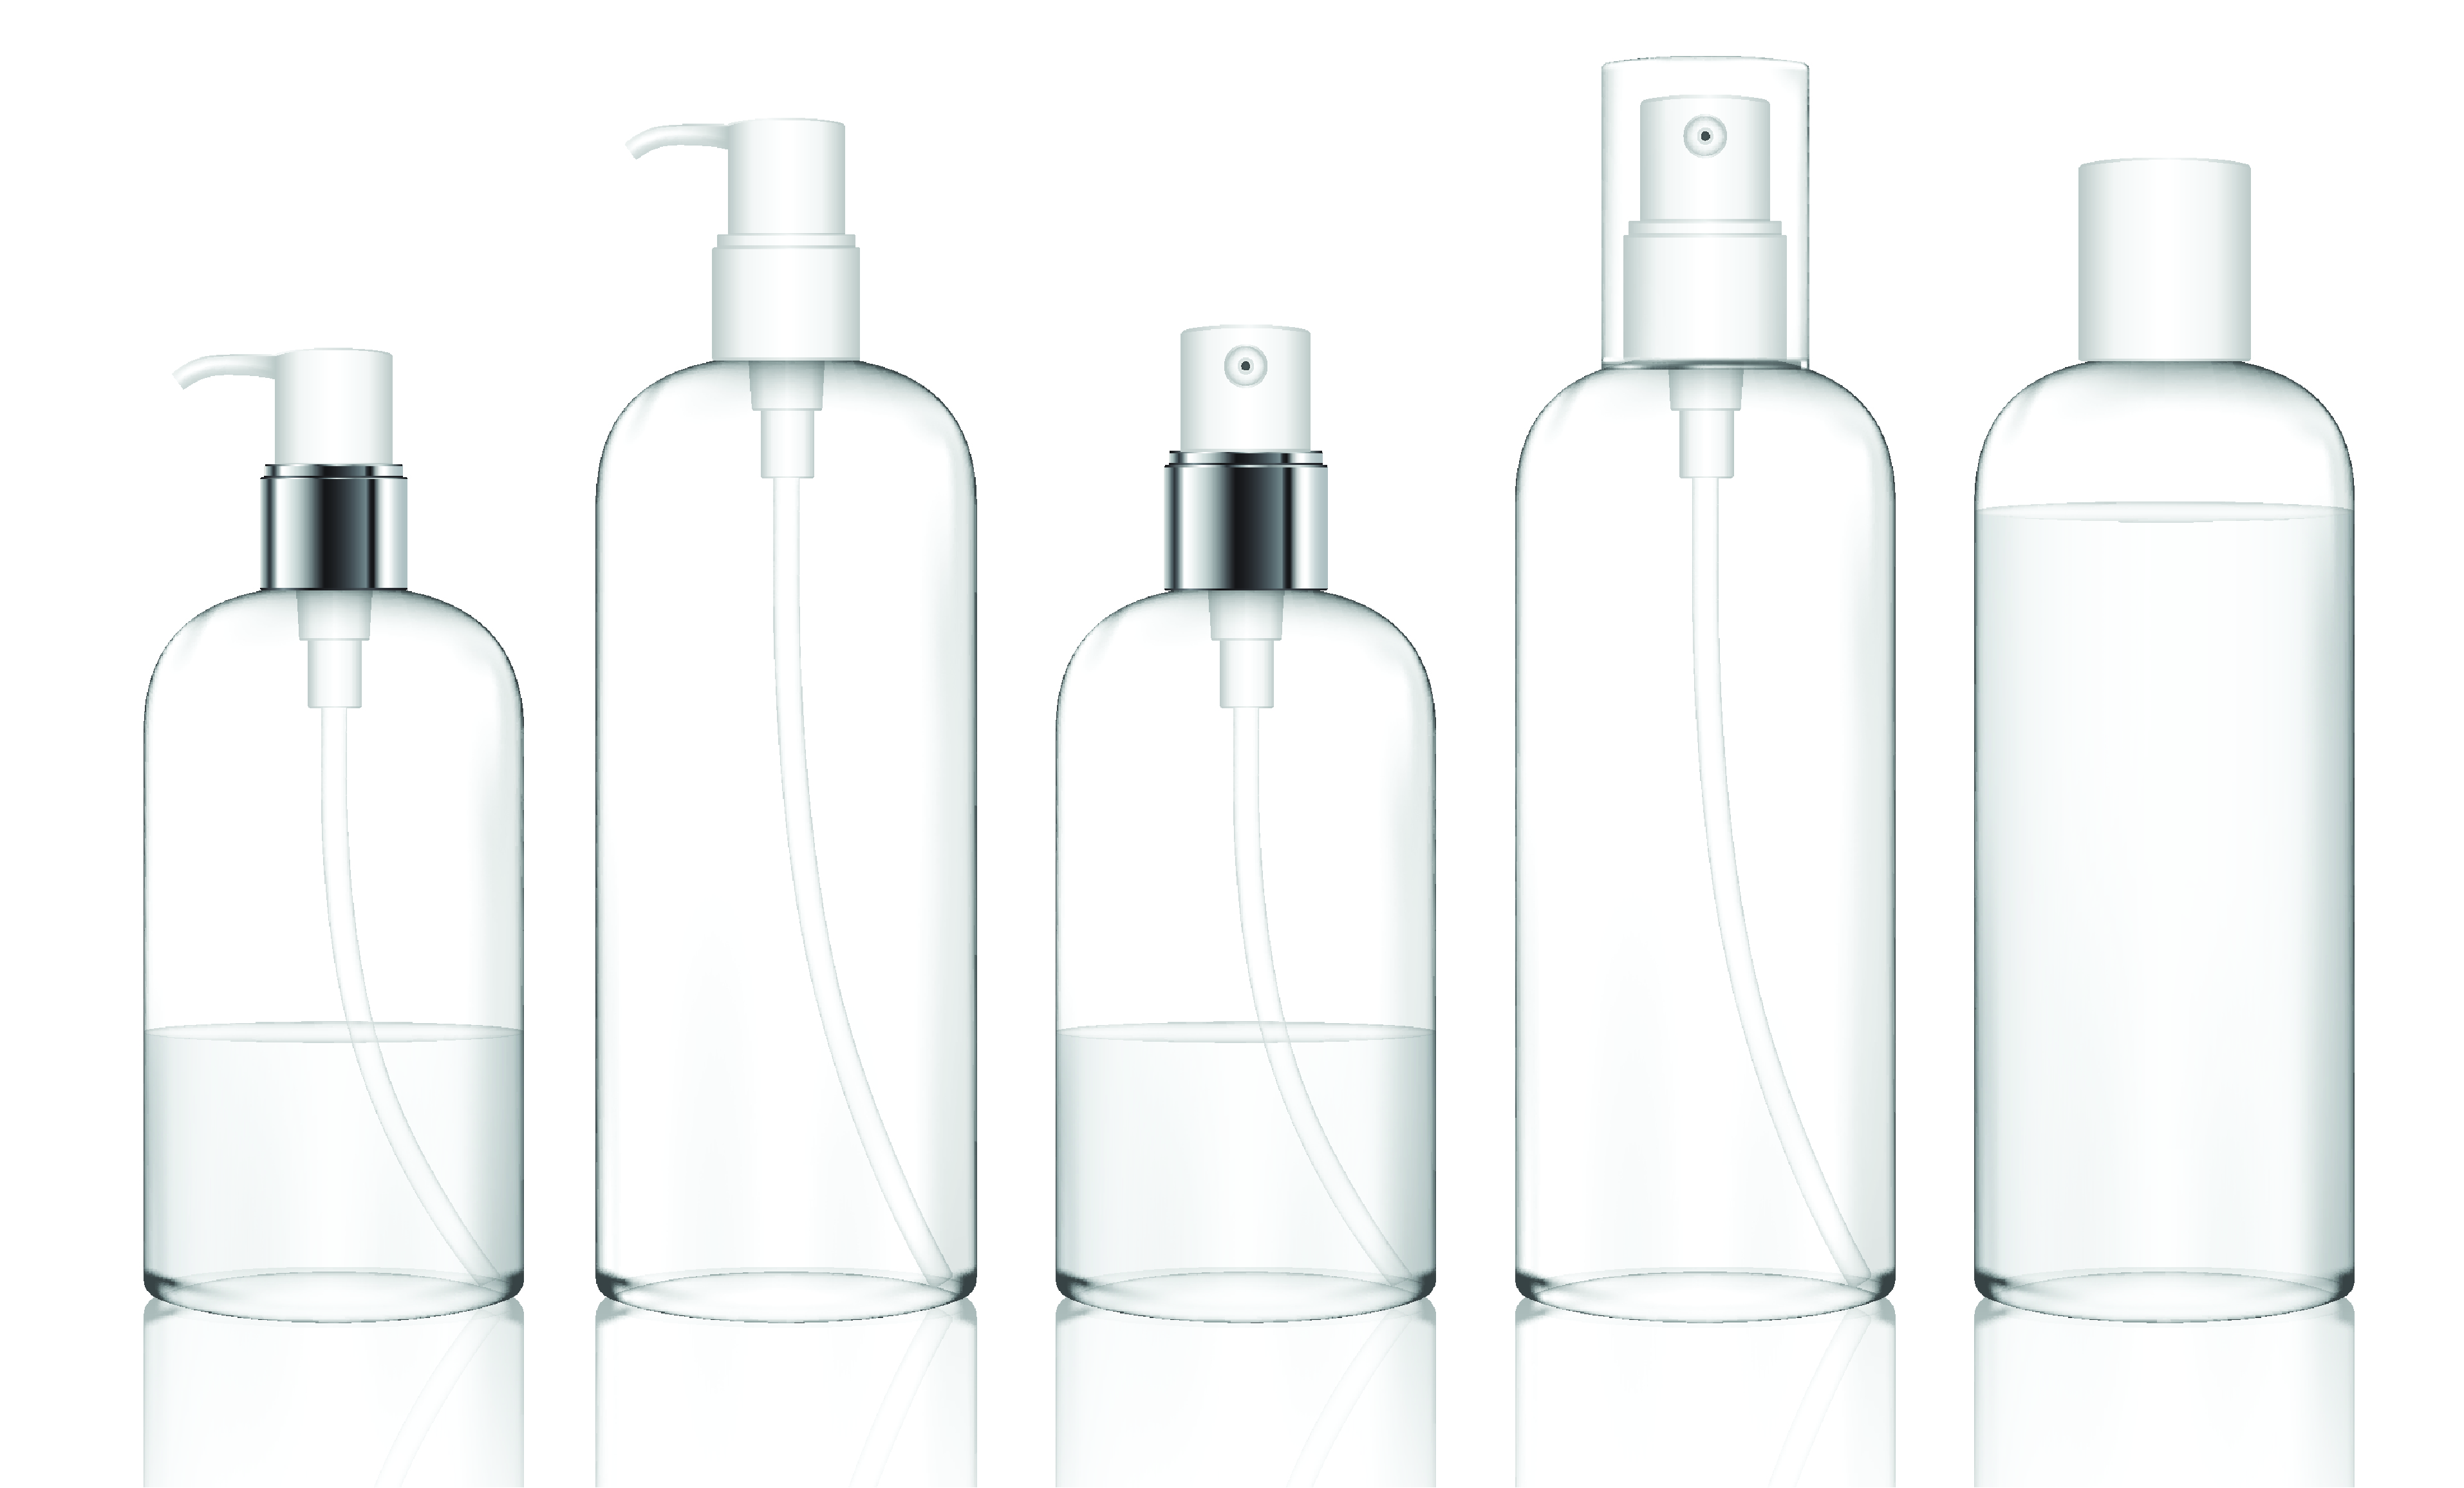 available antibacterial hand sanitizer packaging options for your brand